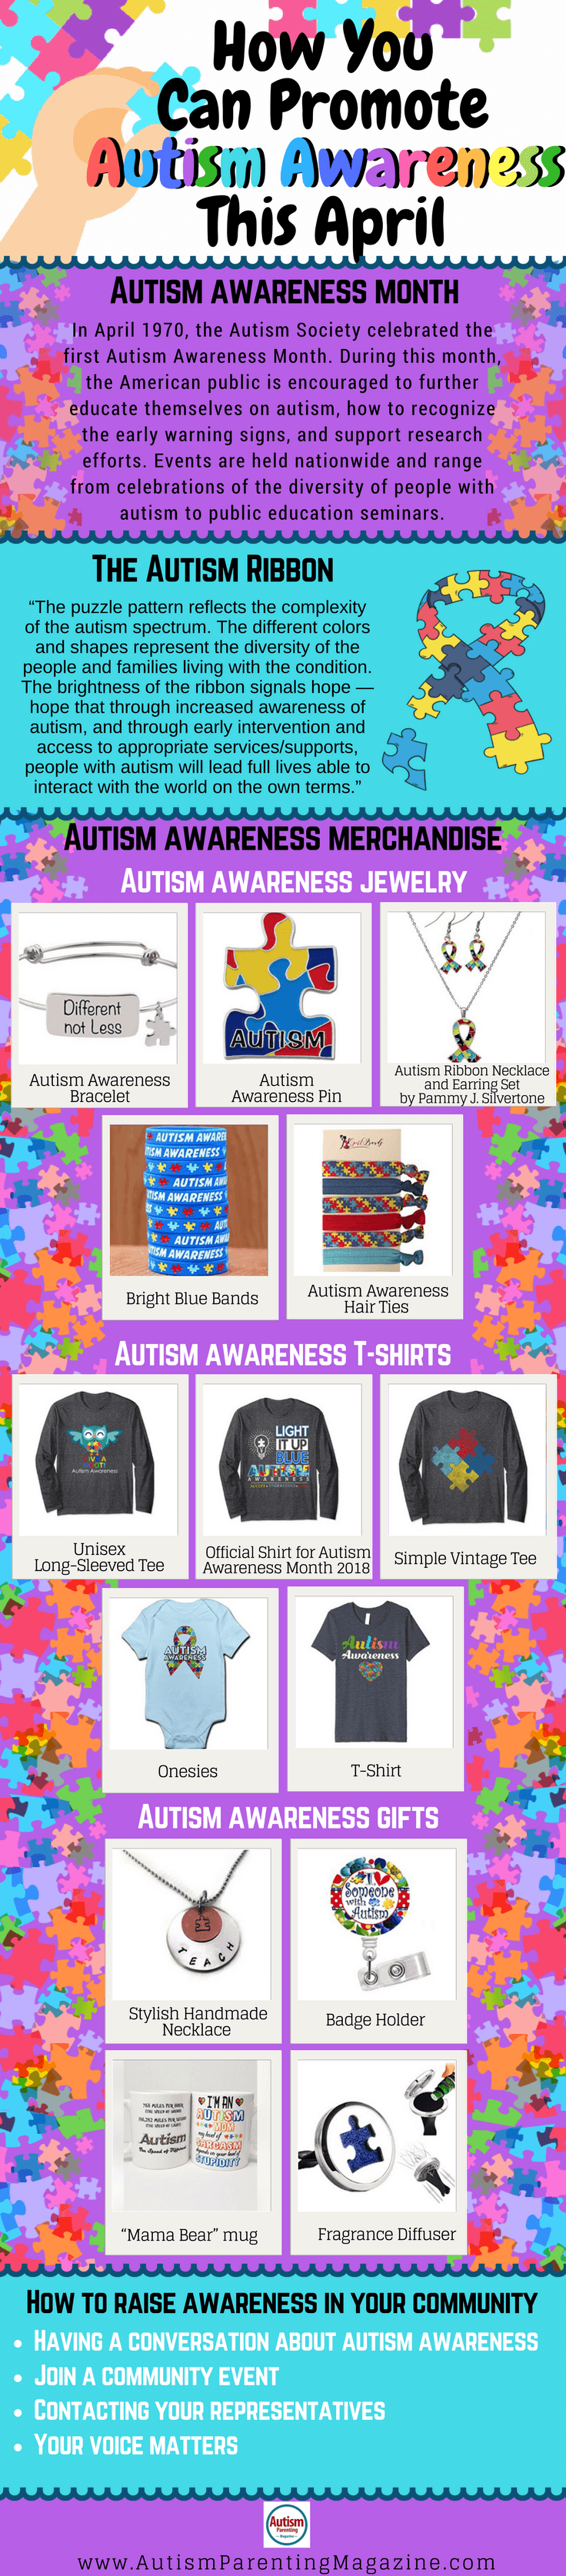 How You Can Promote Autism Awareness This April Autism Parenting